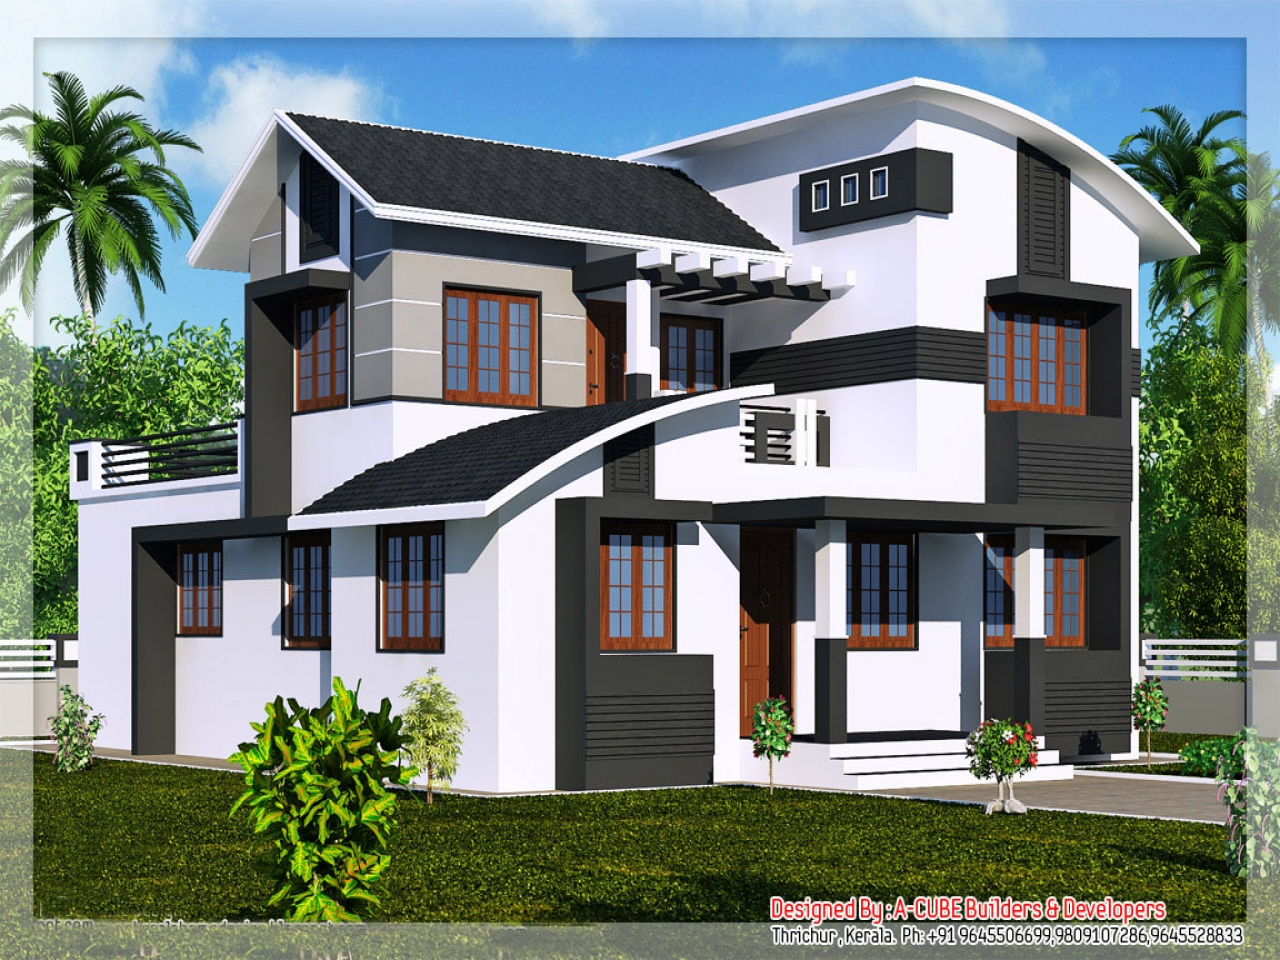 India duplex house design duplex house plans and designs for Duplex townhouse designs